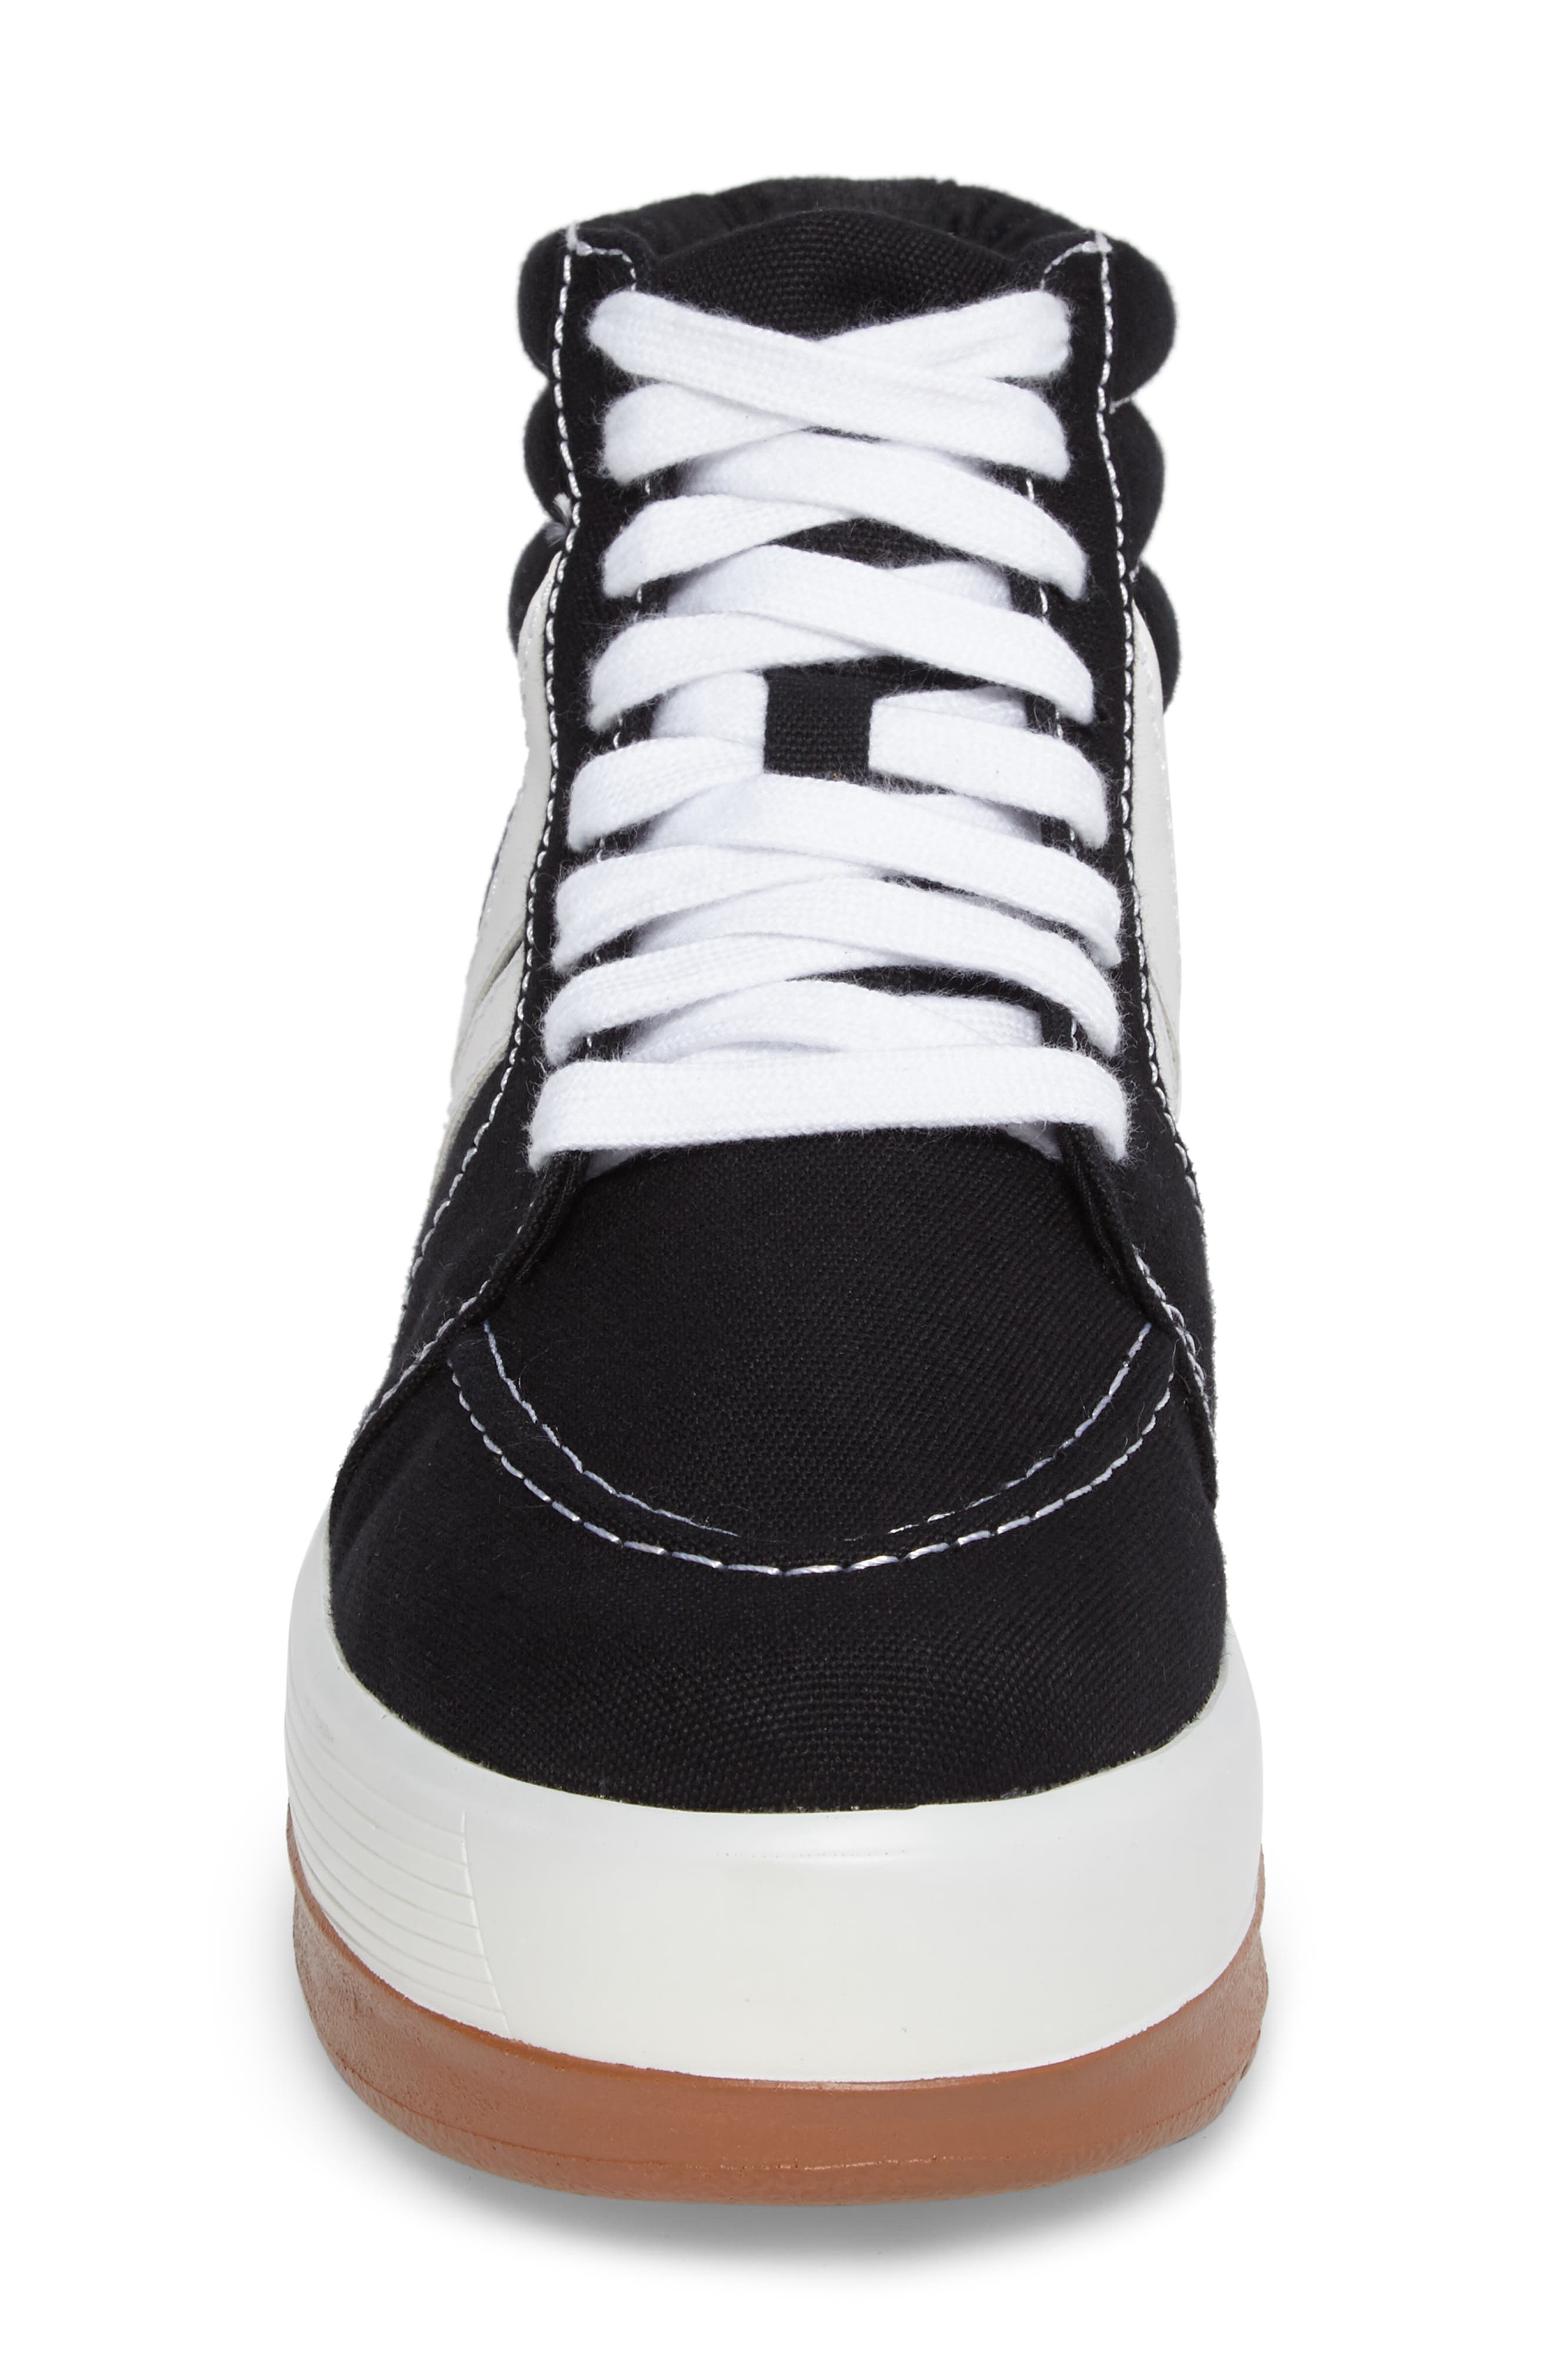 Grind High Top Sneaker,                             Alternate thumbnail 4, color,                             001